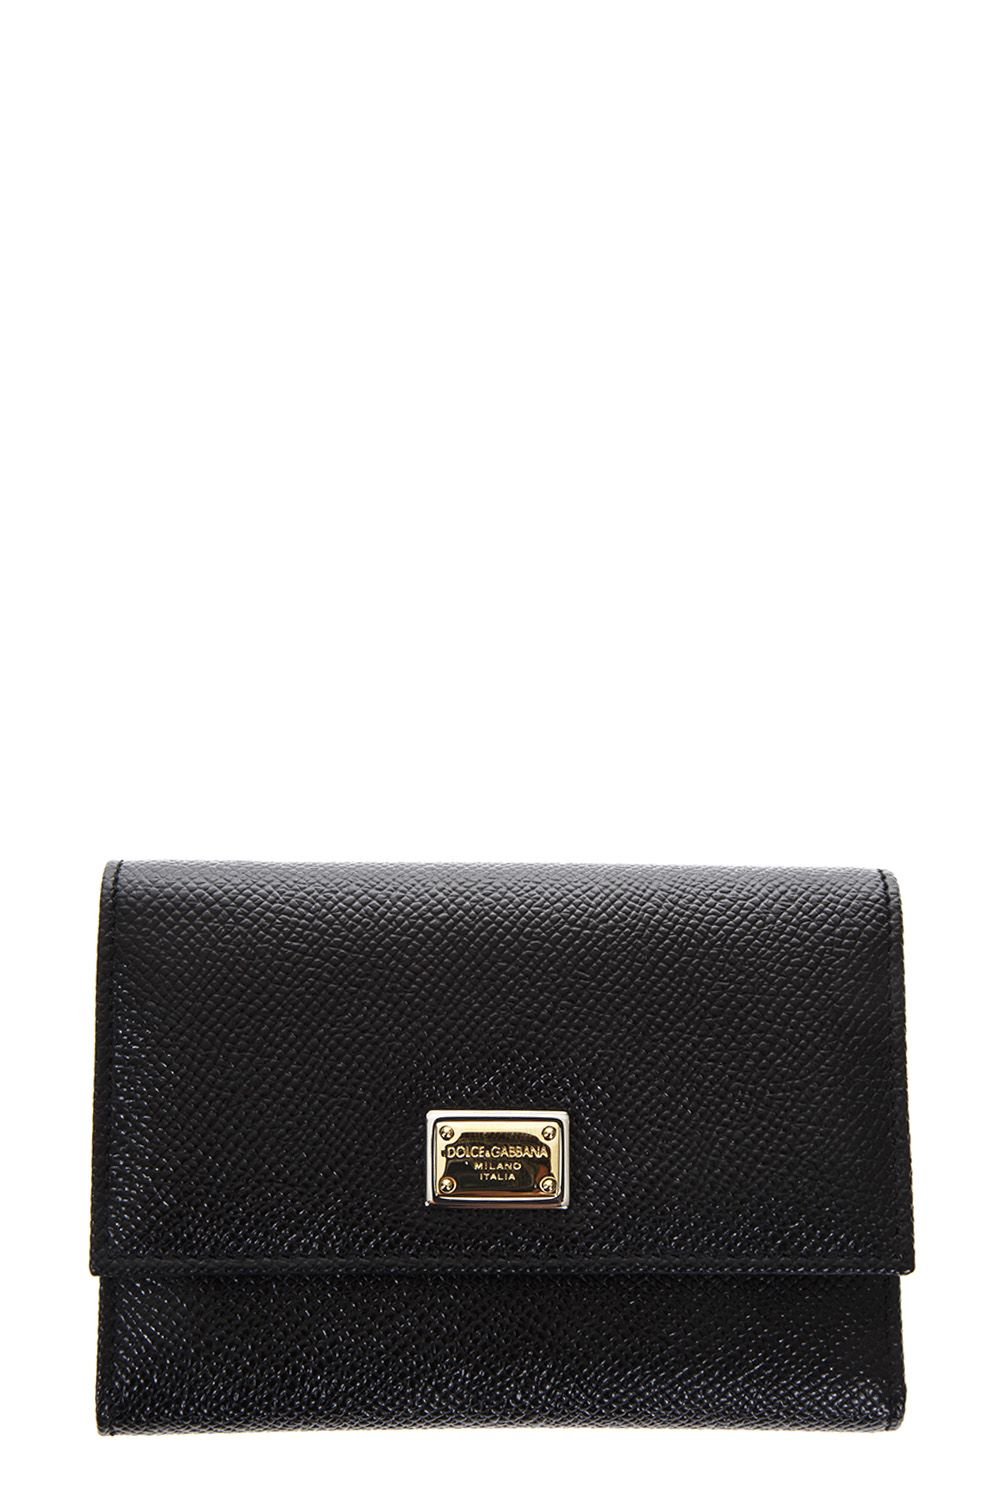 Dolce & Gabbana Dauphine Black Leather Wallet